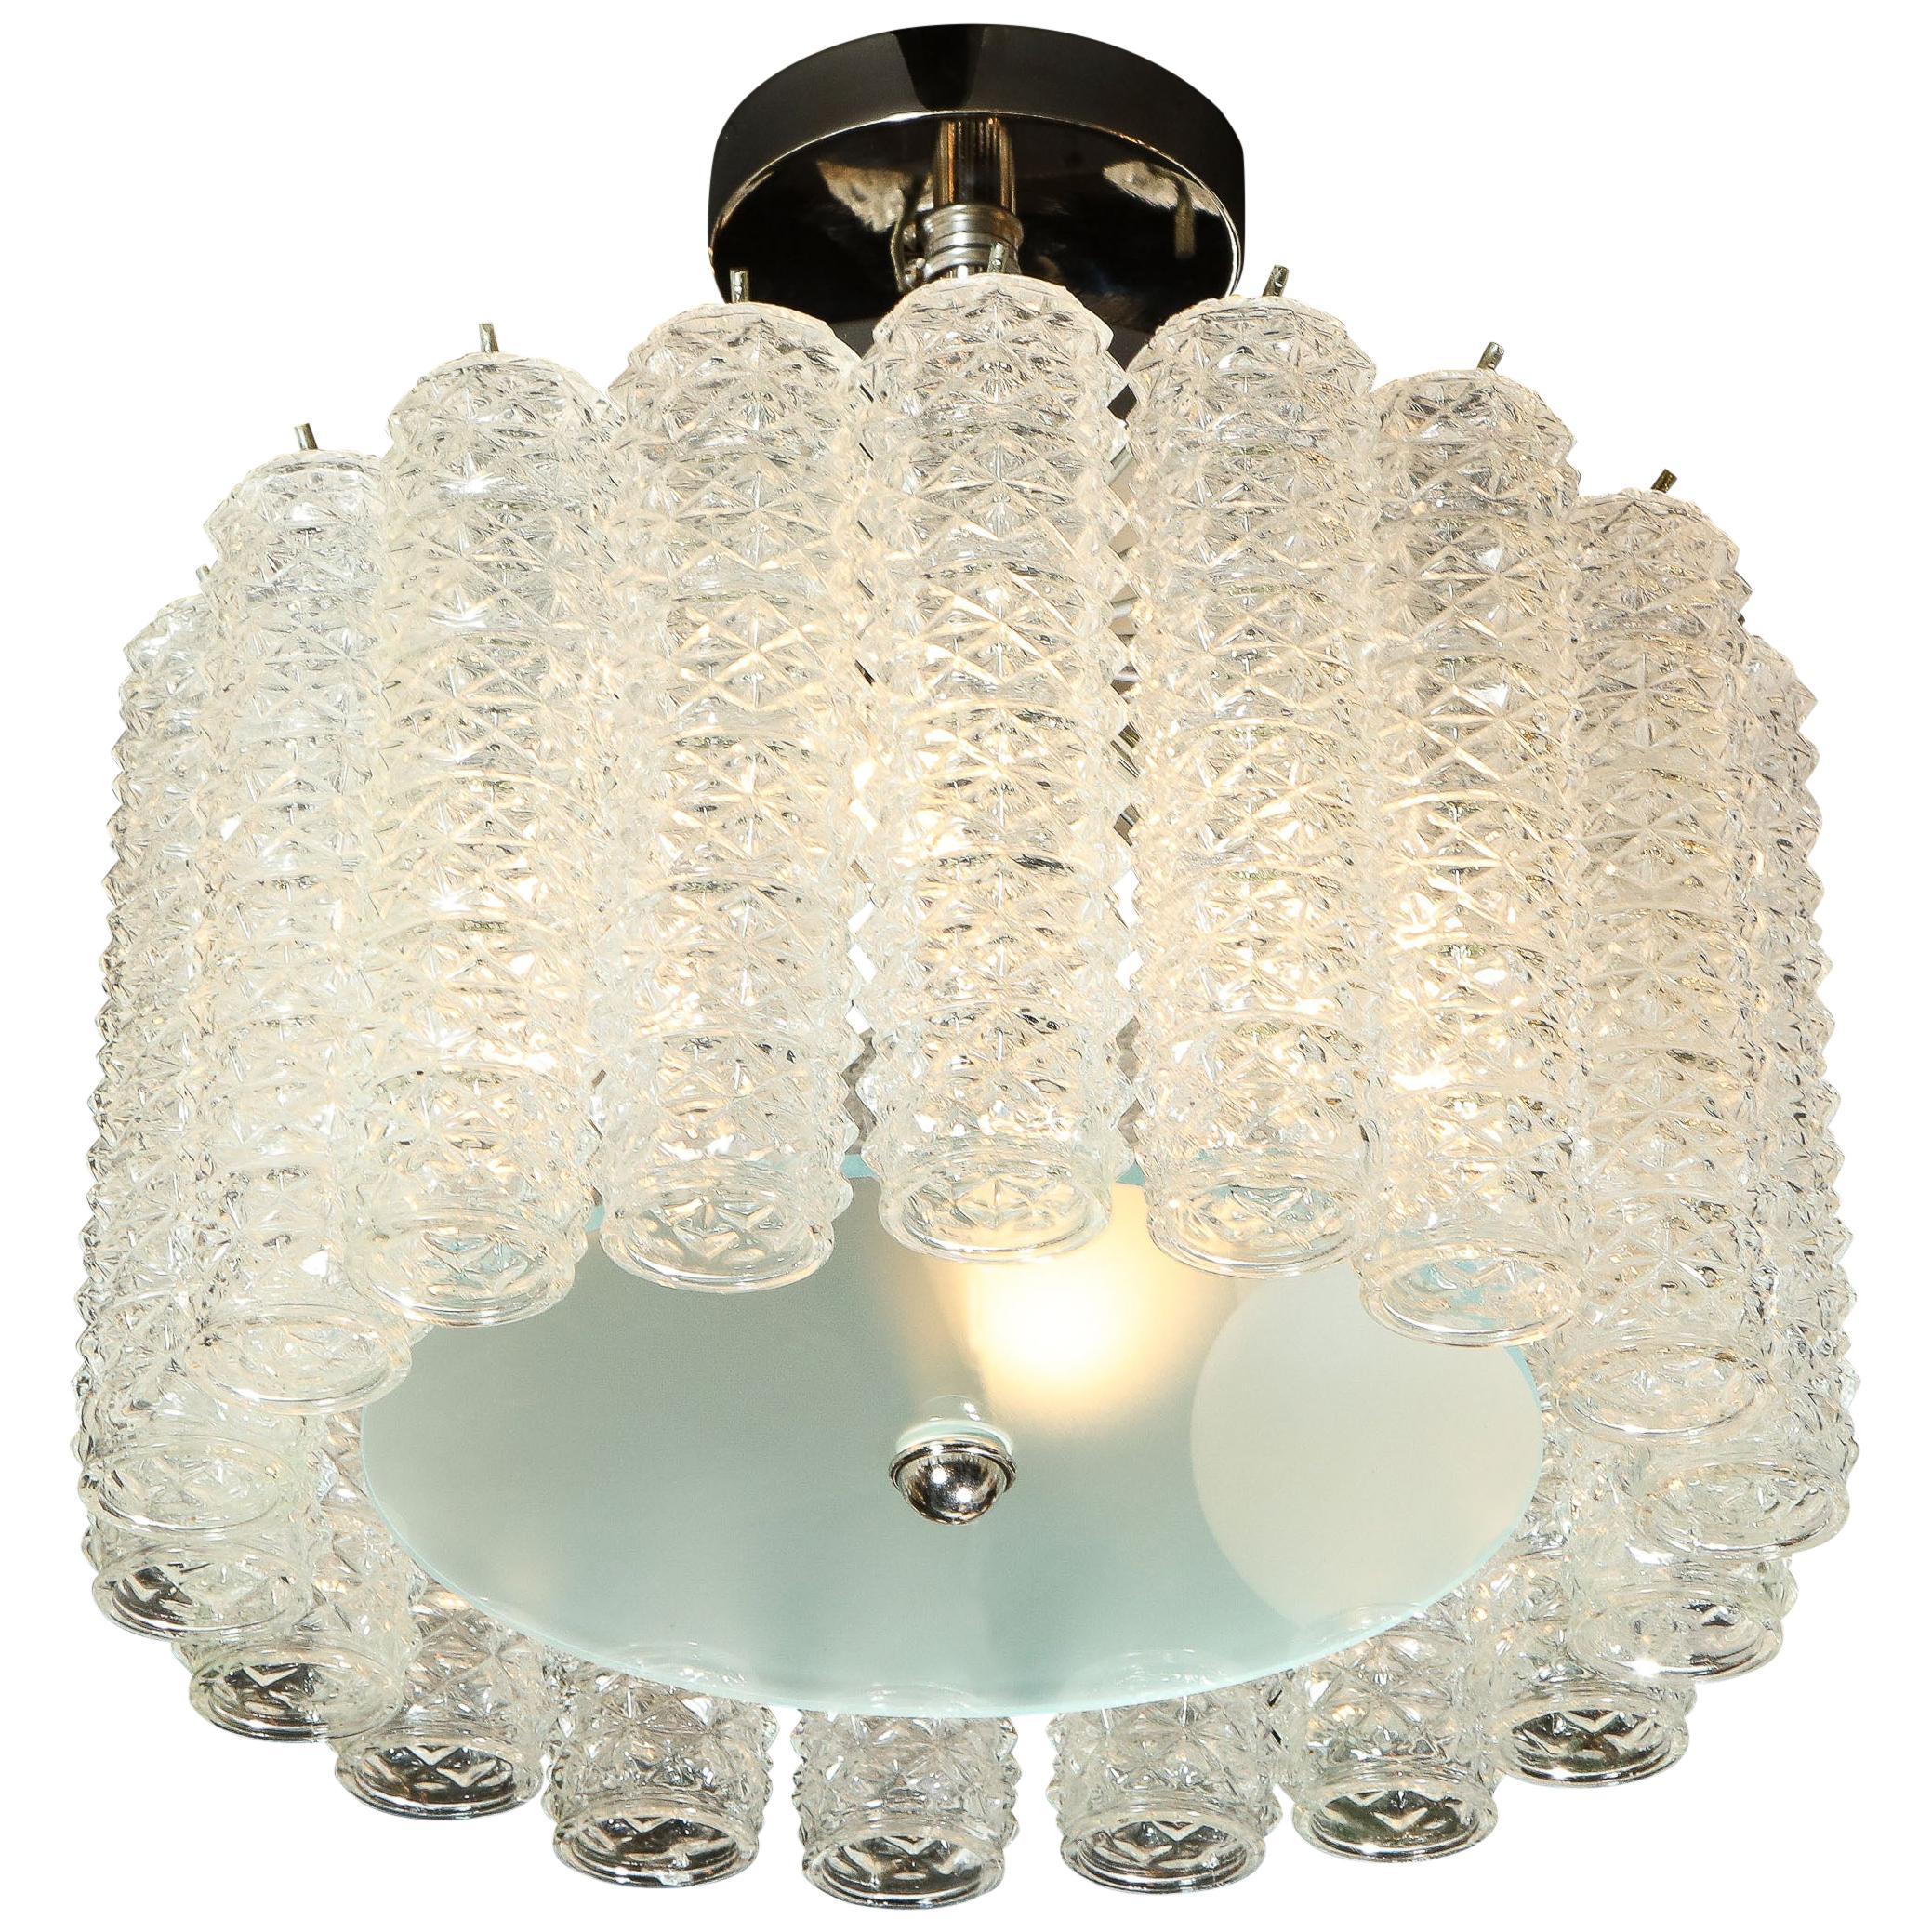 Midcentury Chrome, Hand Blown Translucent and Frosted Murano Glass Chandelier